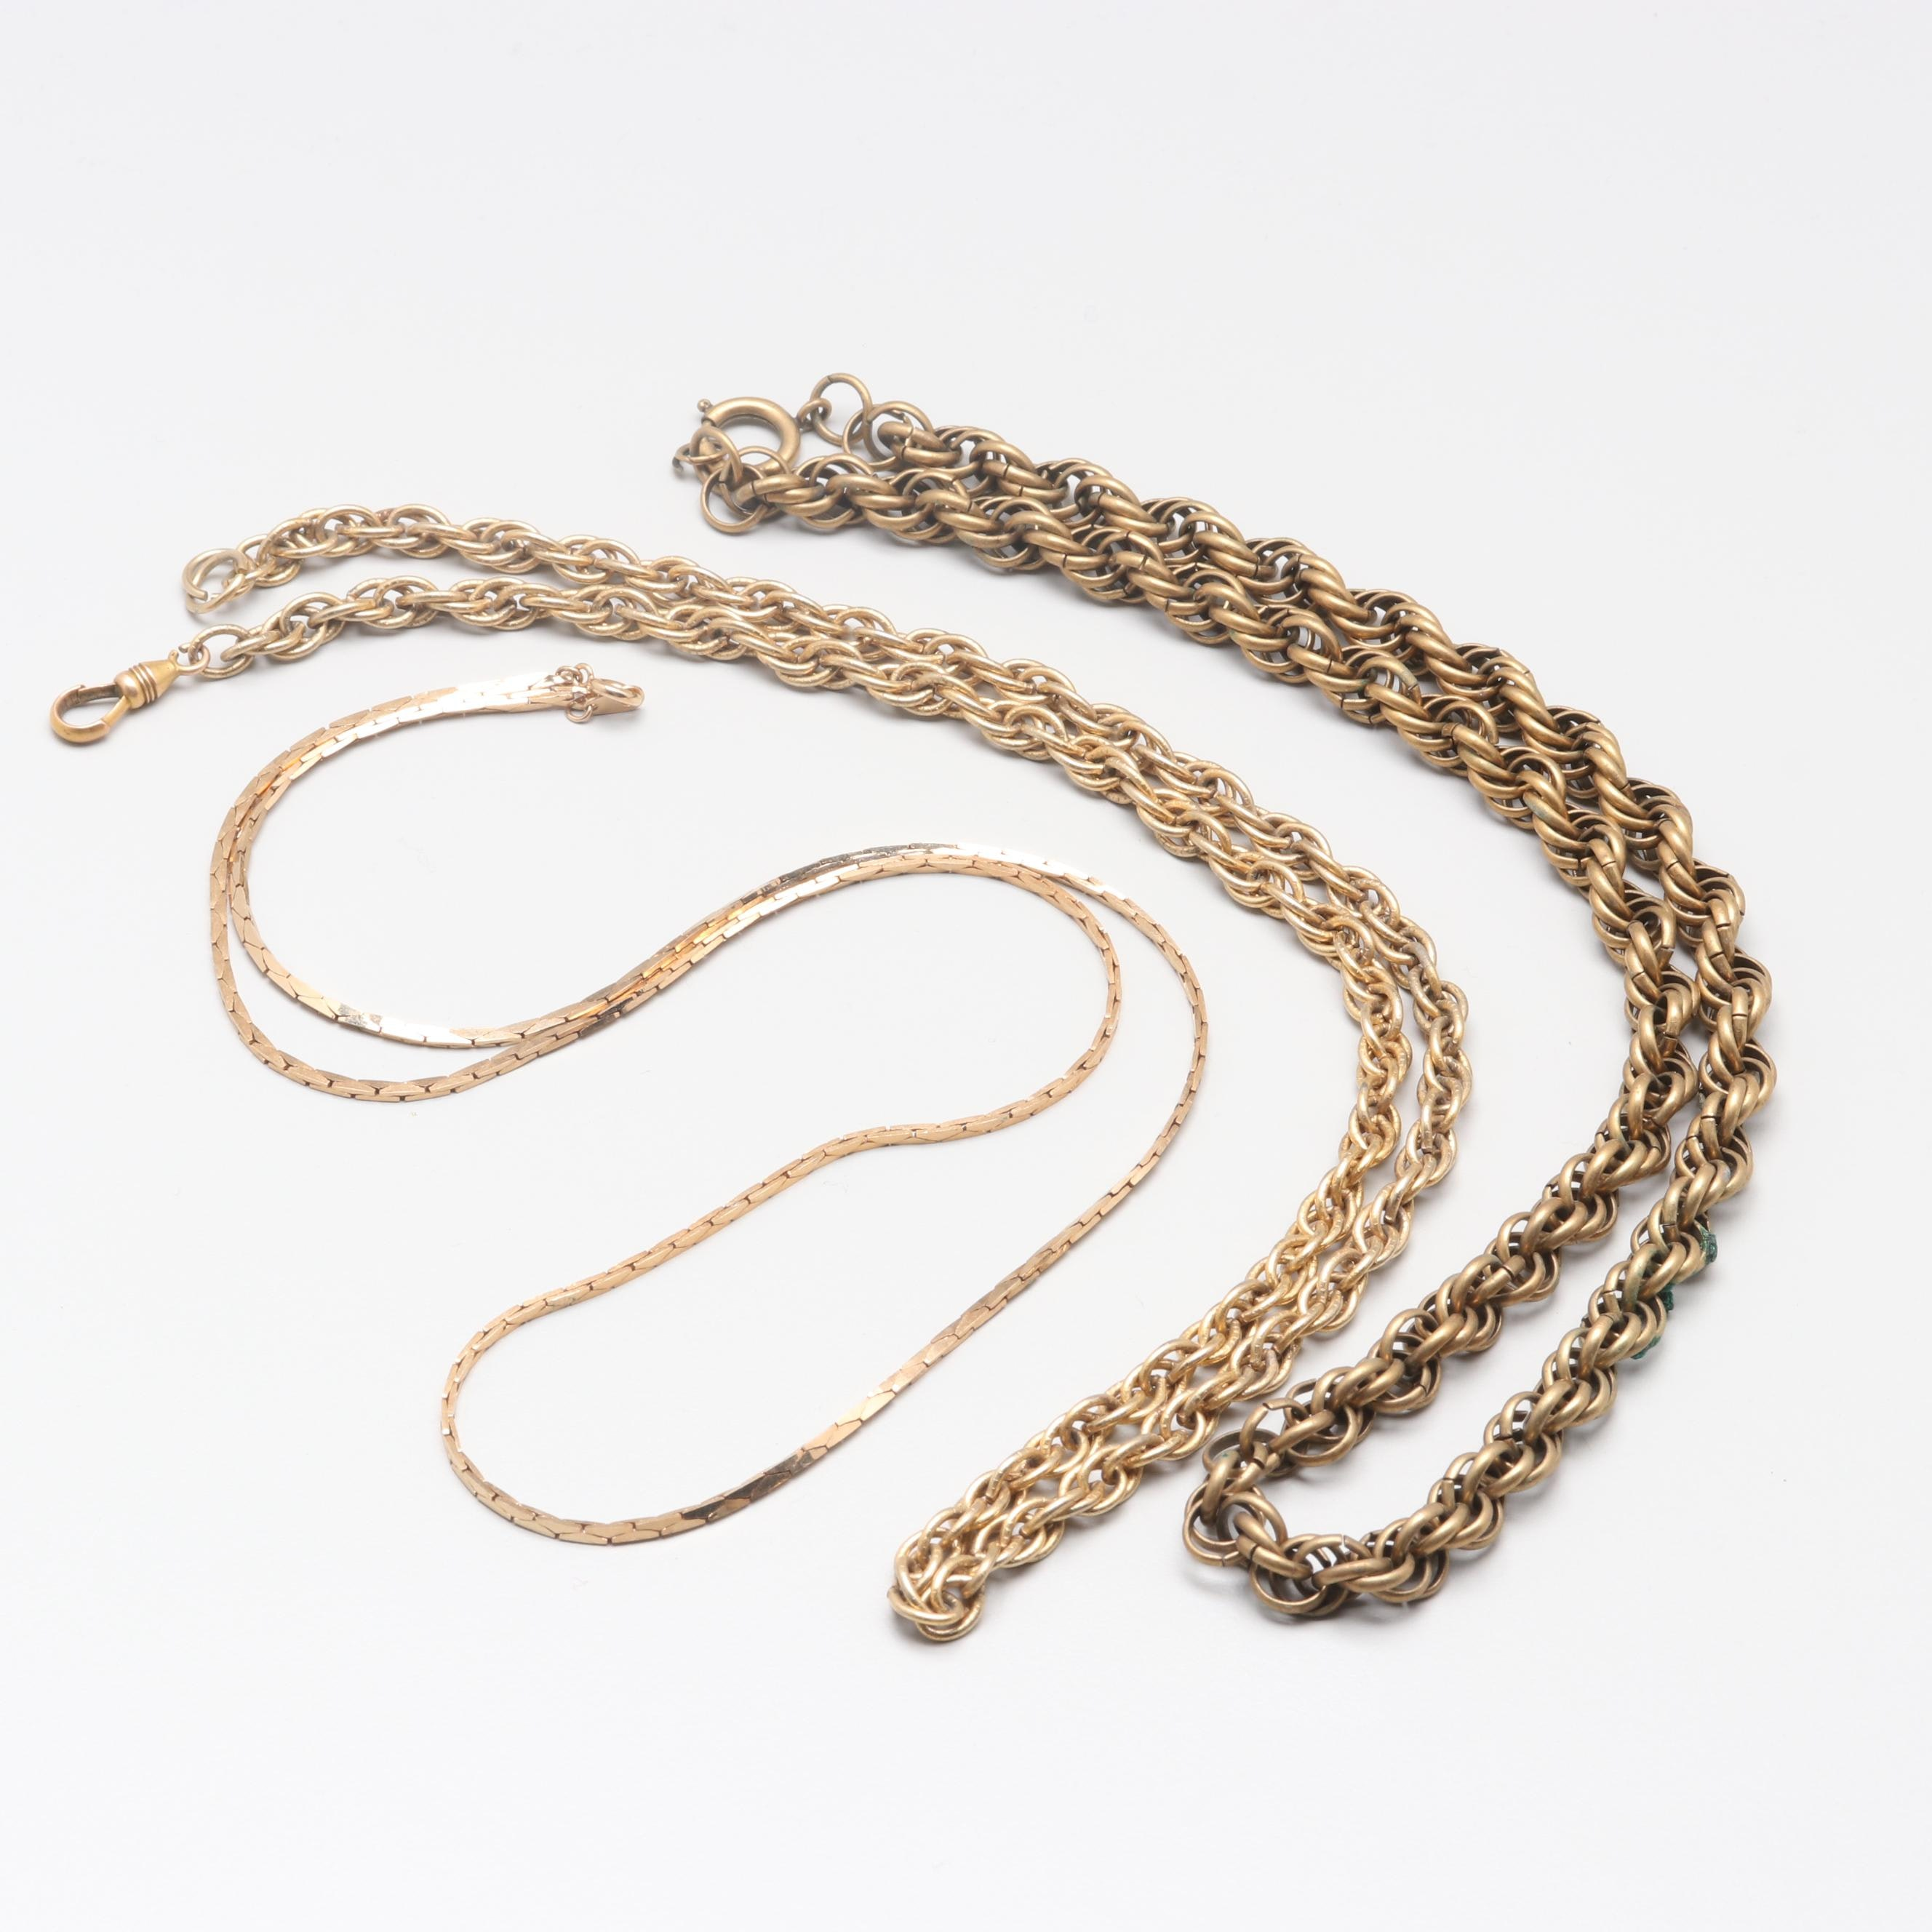 Gold Tone Rope and Cobra Chain Necklaces